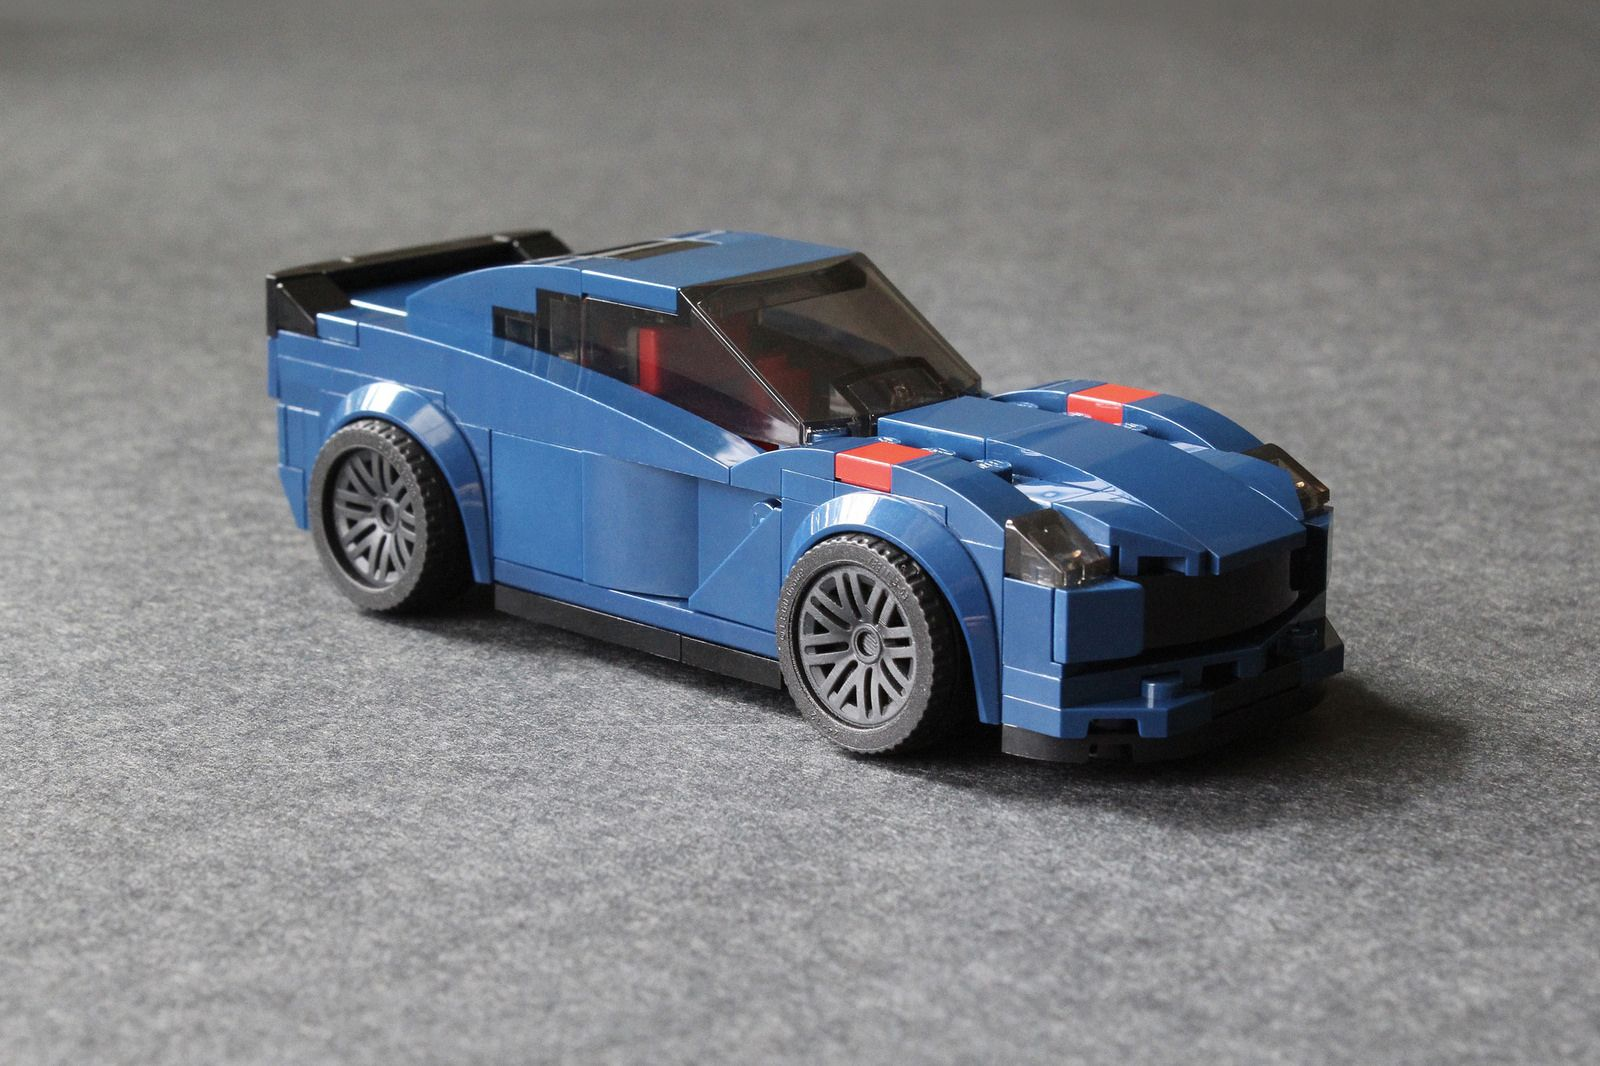 Pin On Lego Scale Vehicles